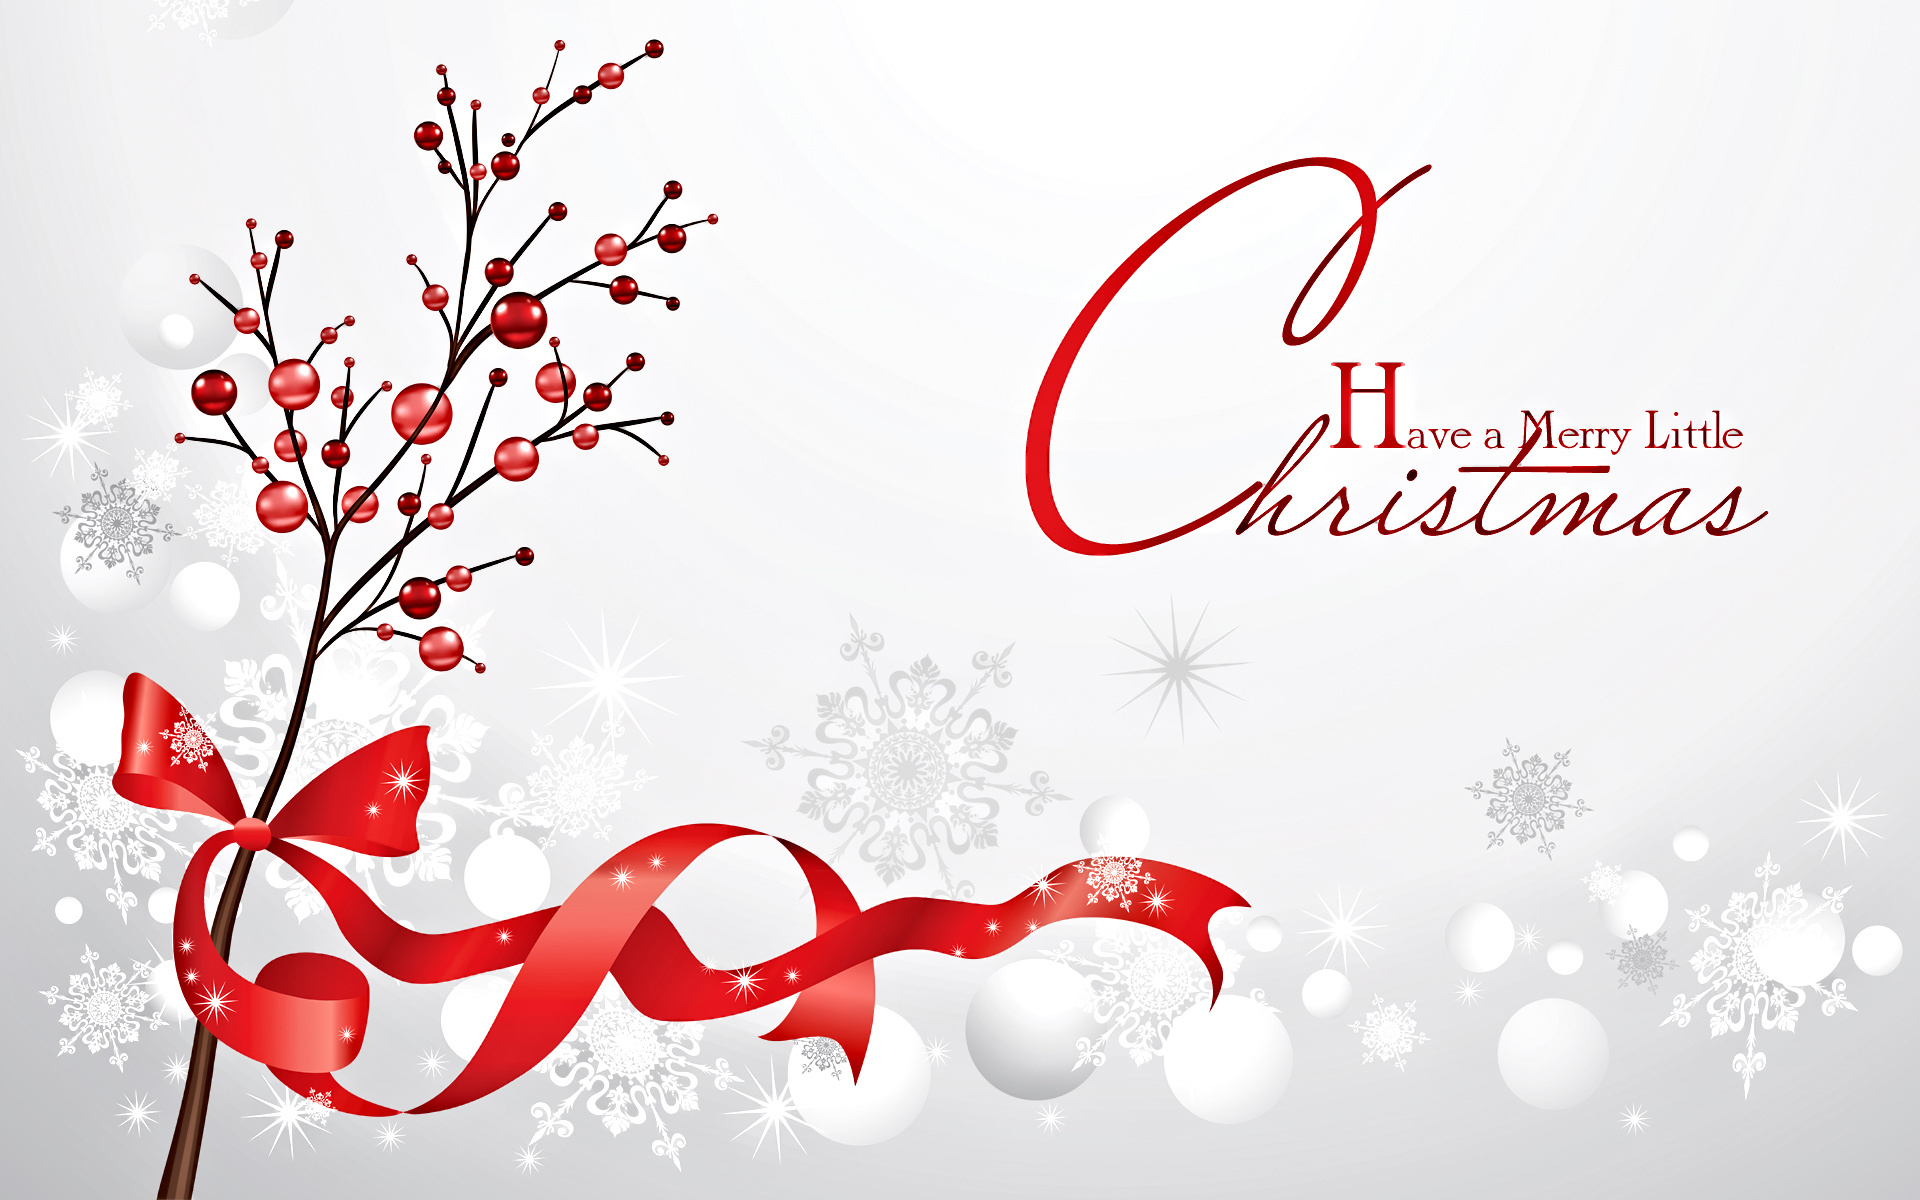 Wallpaper Christmas Free